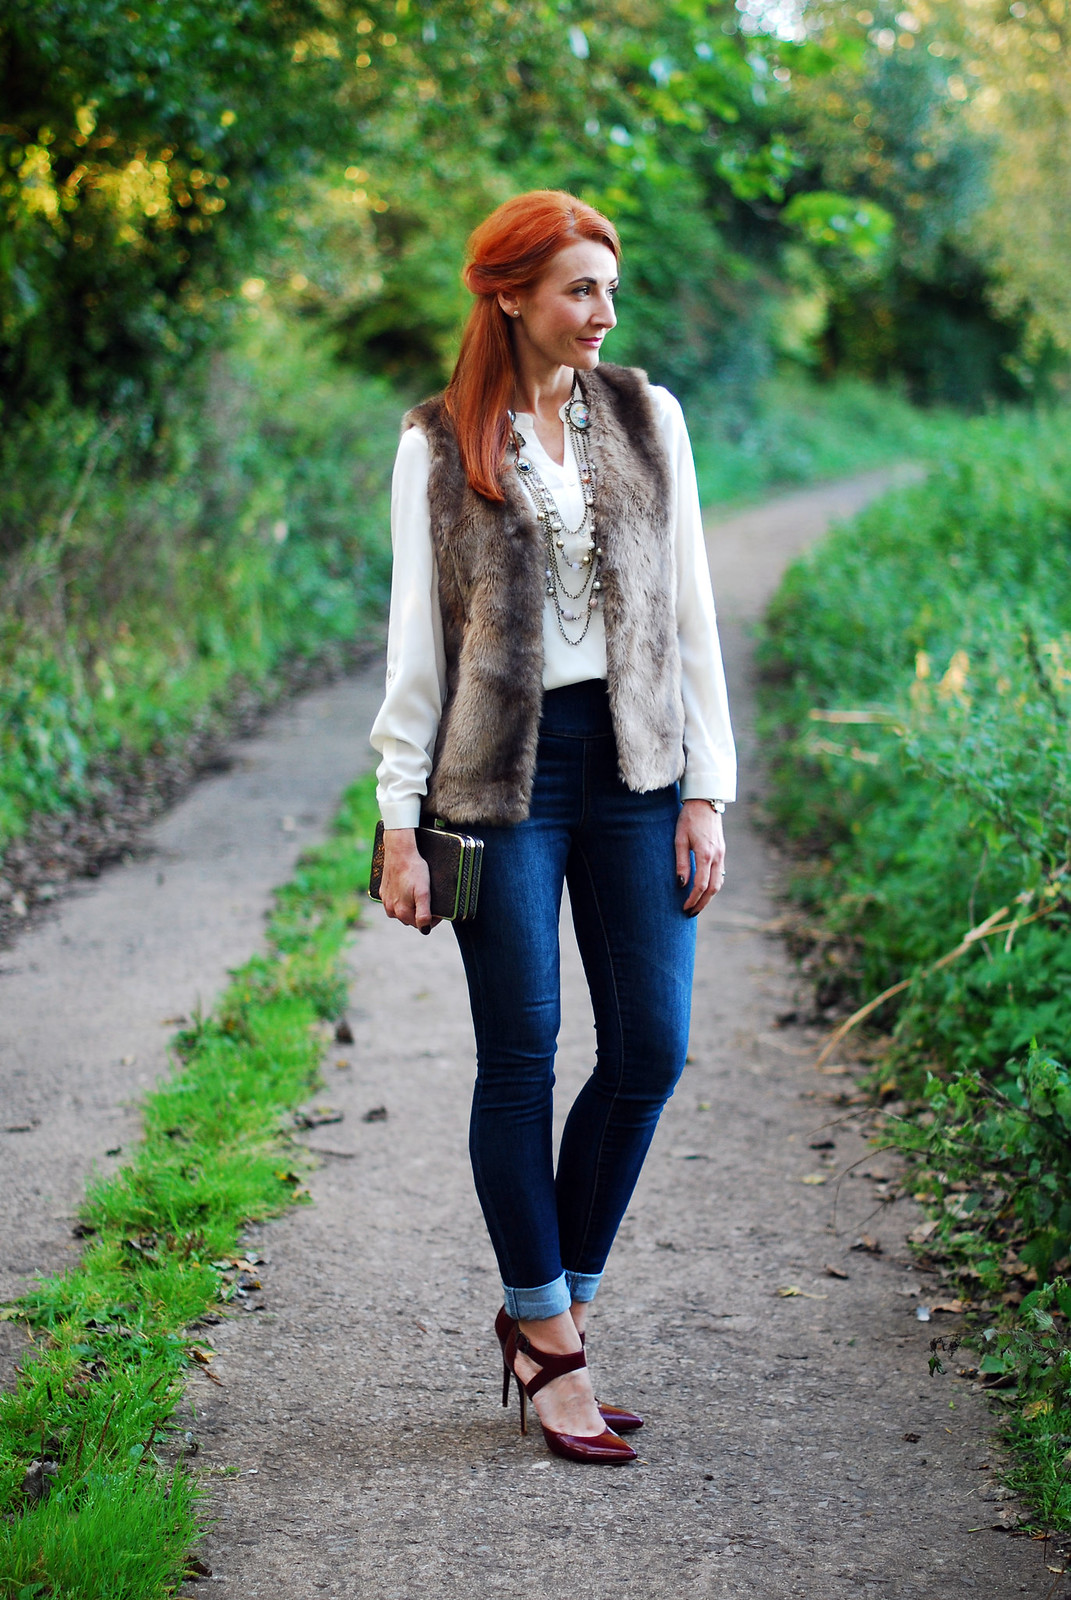 Faux fur gilet, skinnies and heels